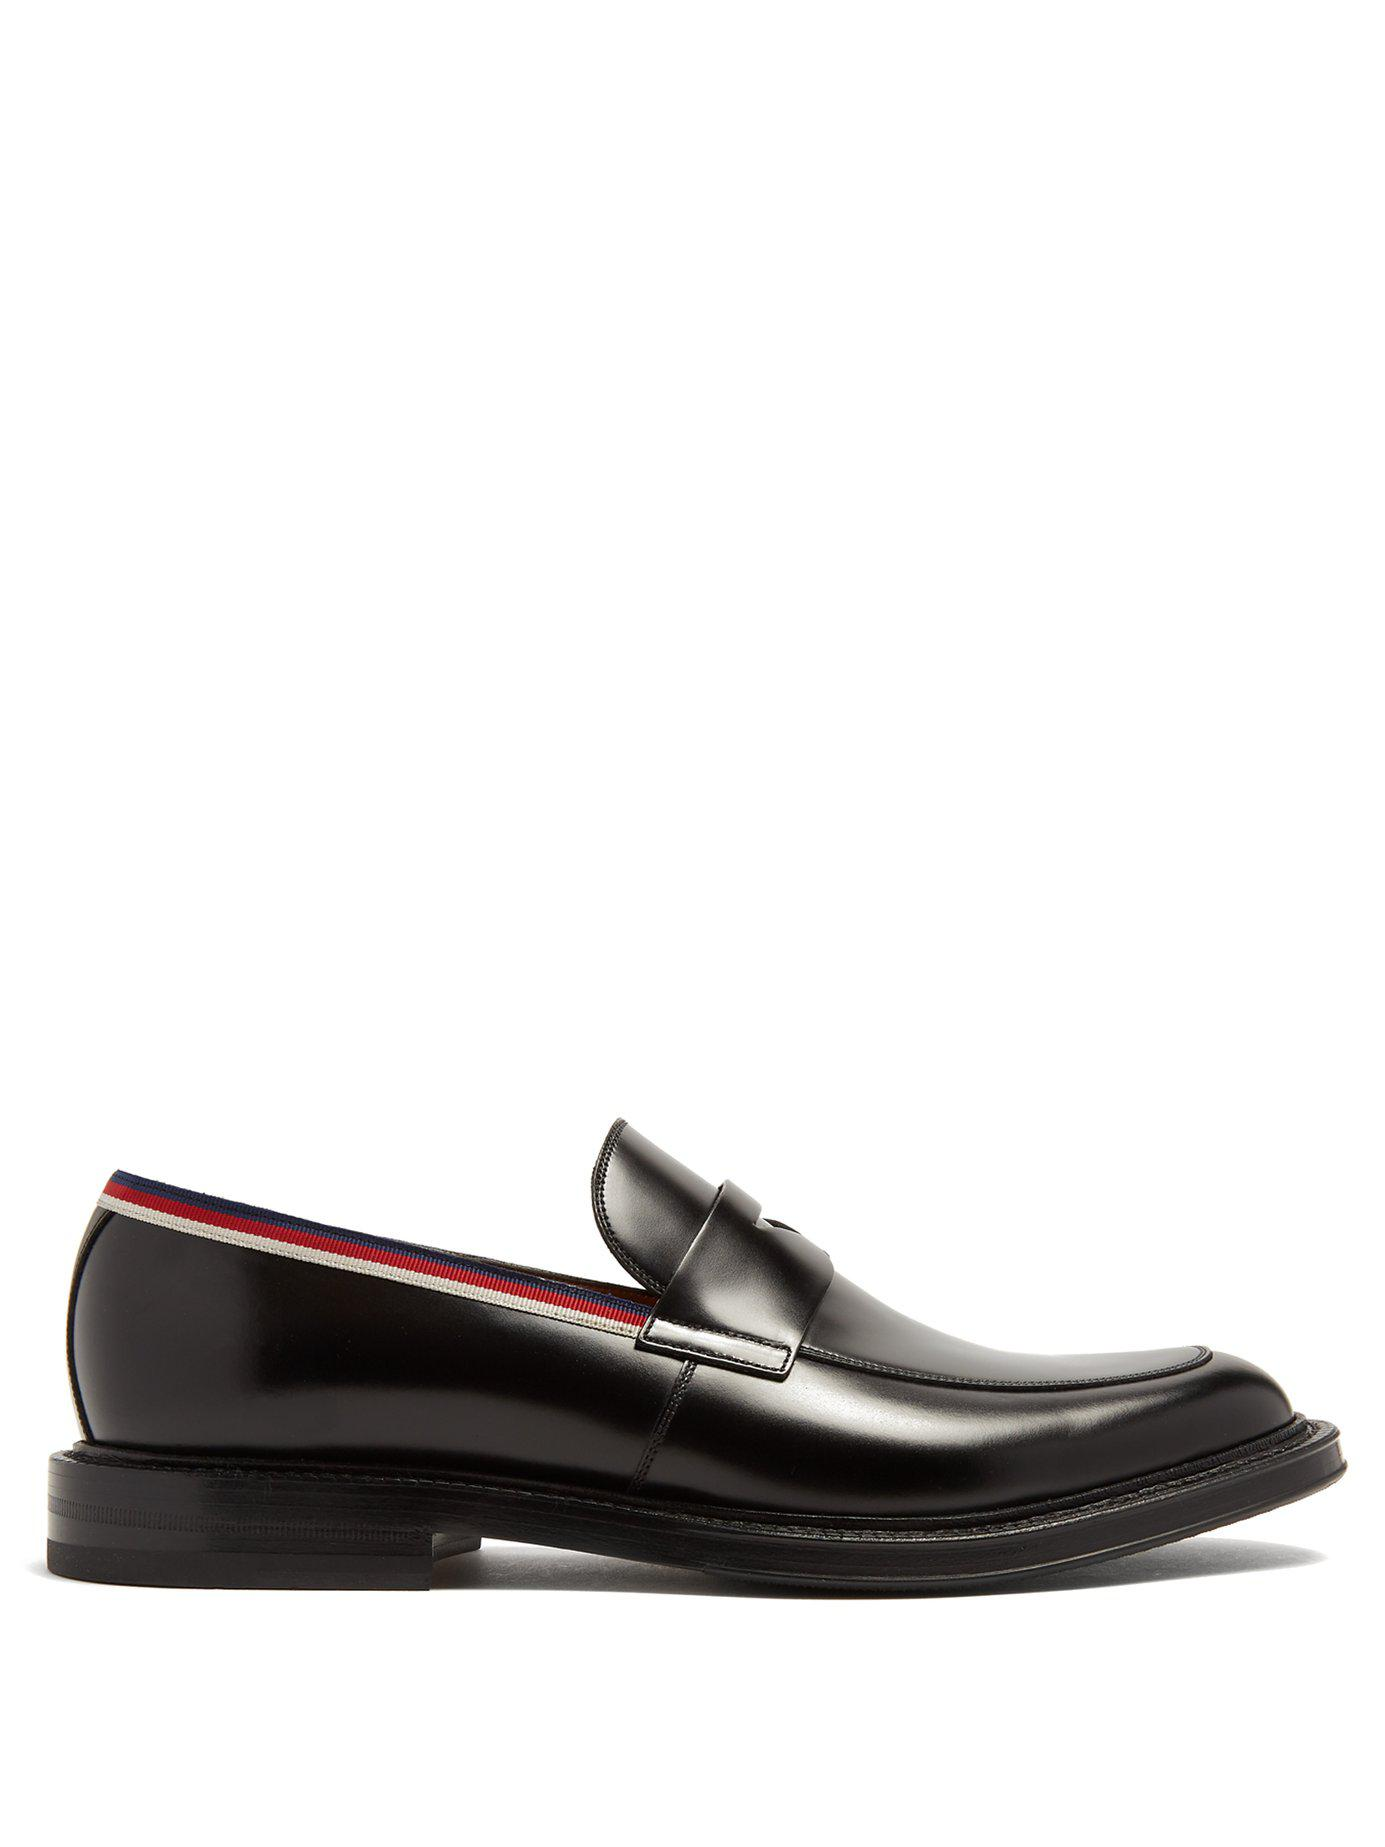 679562c61d9 Lyst - Gucci Beyond Web Striped Embellished Leather Loafers in Black ...